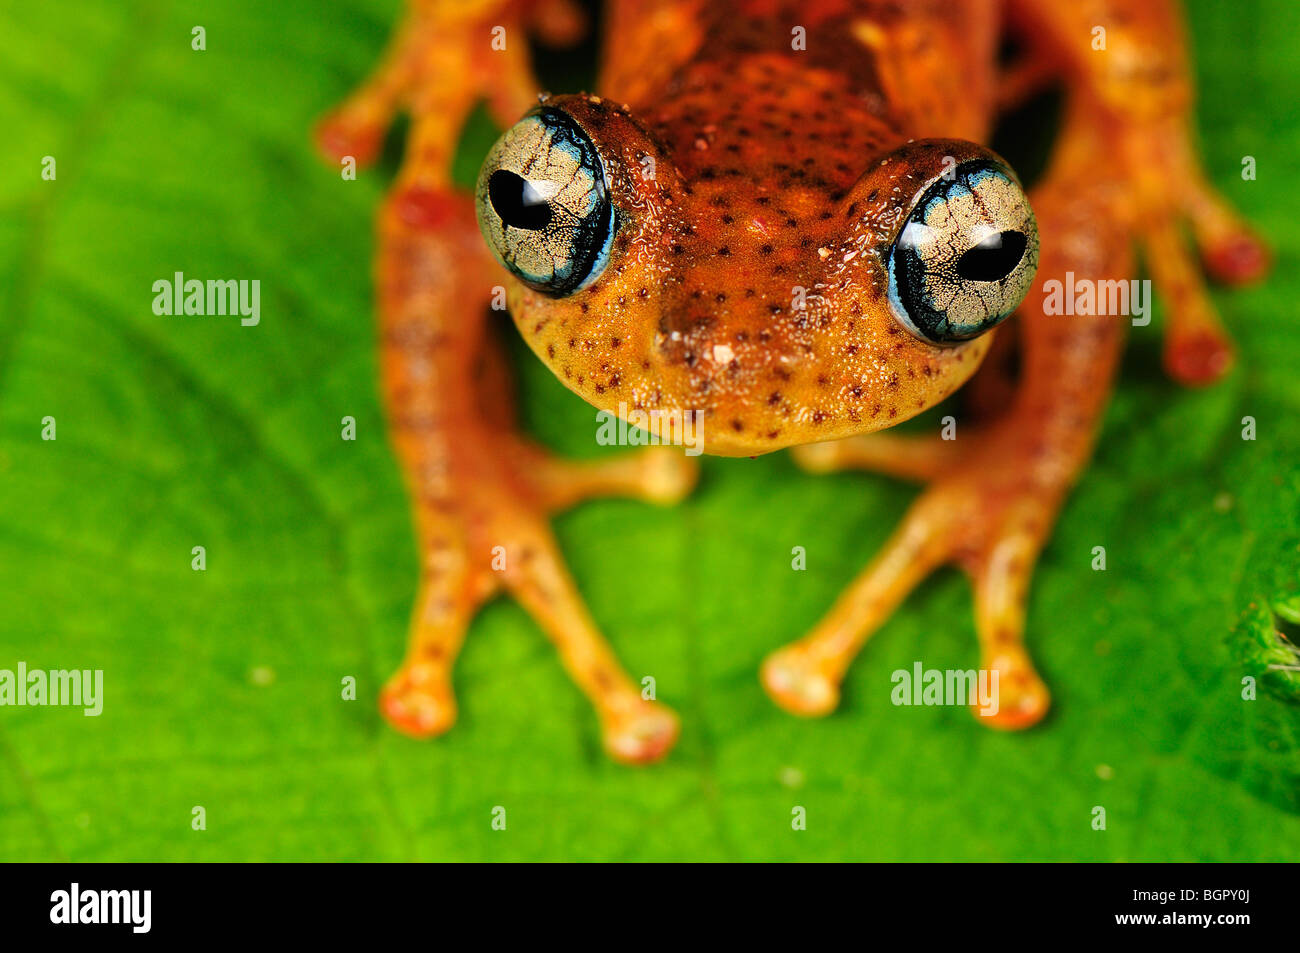 Grenouille d'arbre (Boophis tephraeomystax) (Boophis difficilis}, adulte, parc national Parc Mantadia- Andasibe, Photo Stock